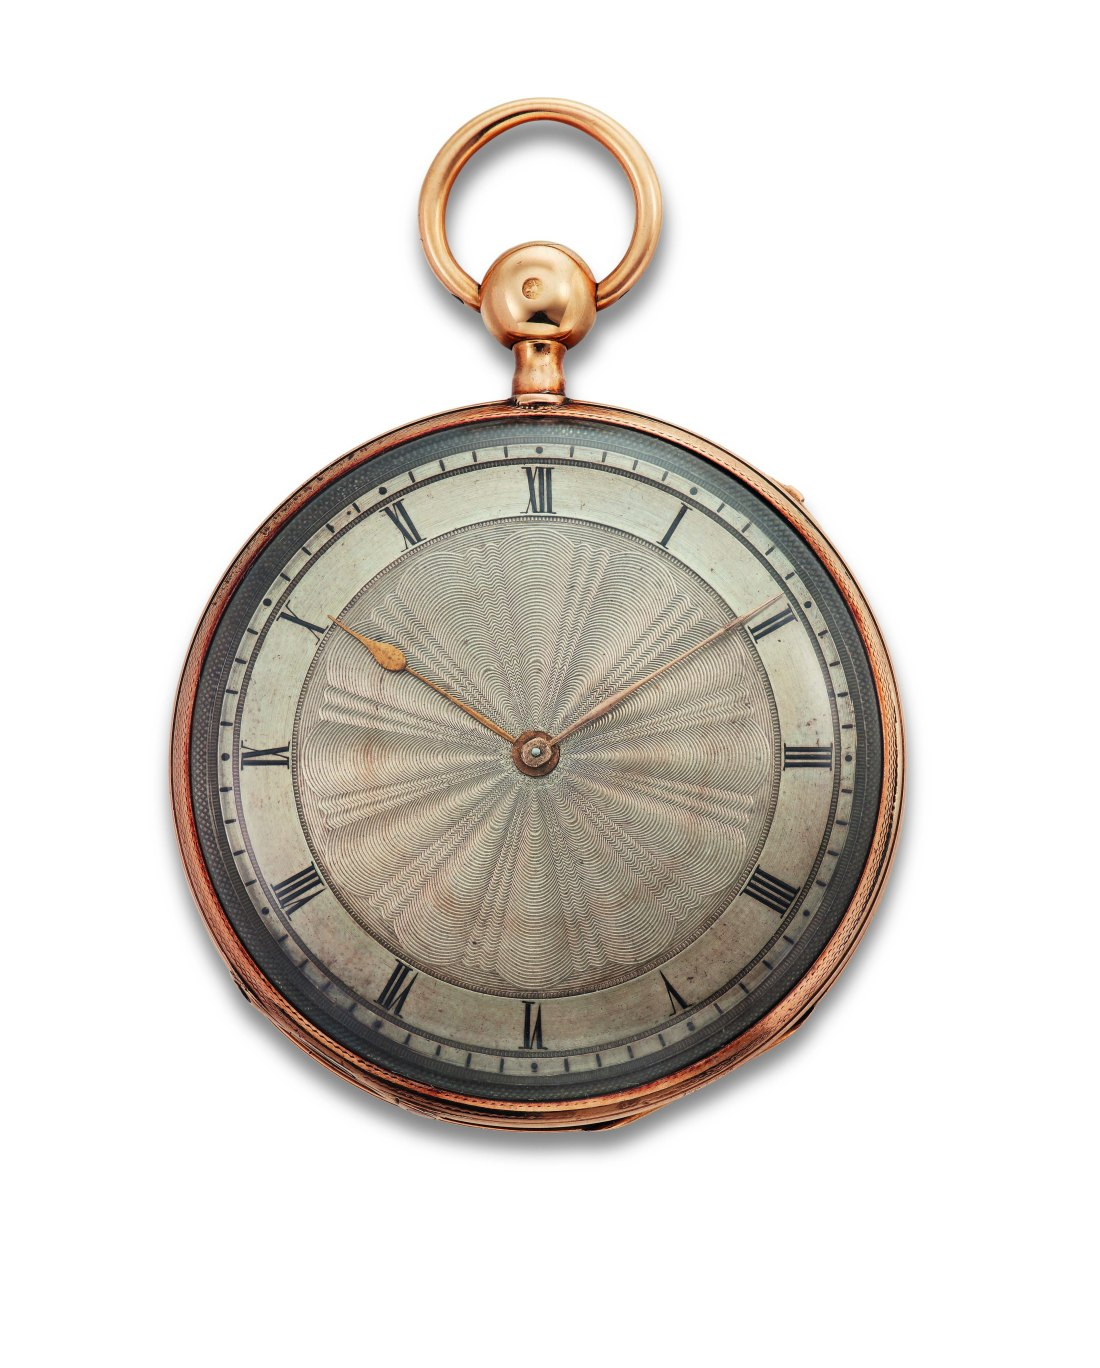 Front view of Edgar Allan Poe's 18-karat gold pocket watch, showcasing its handsome dial.